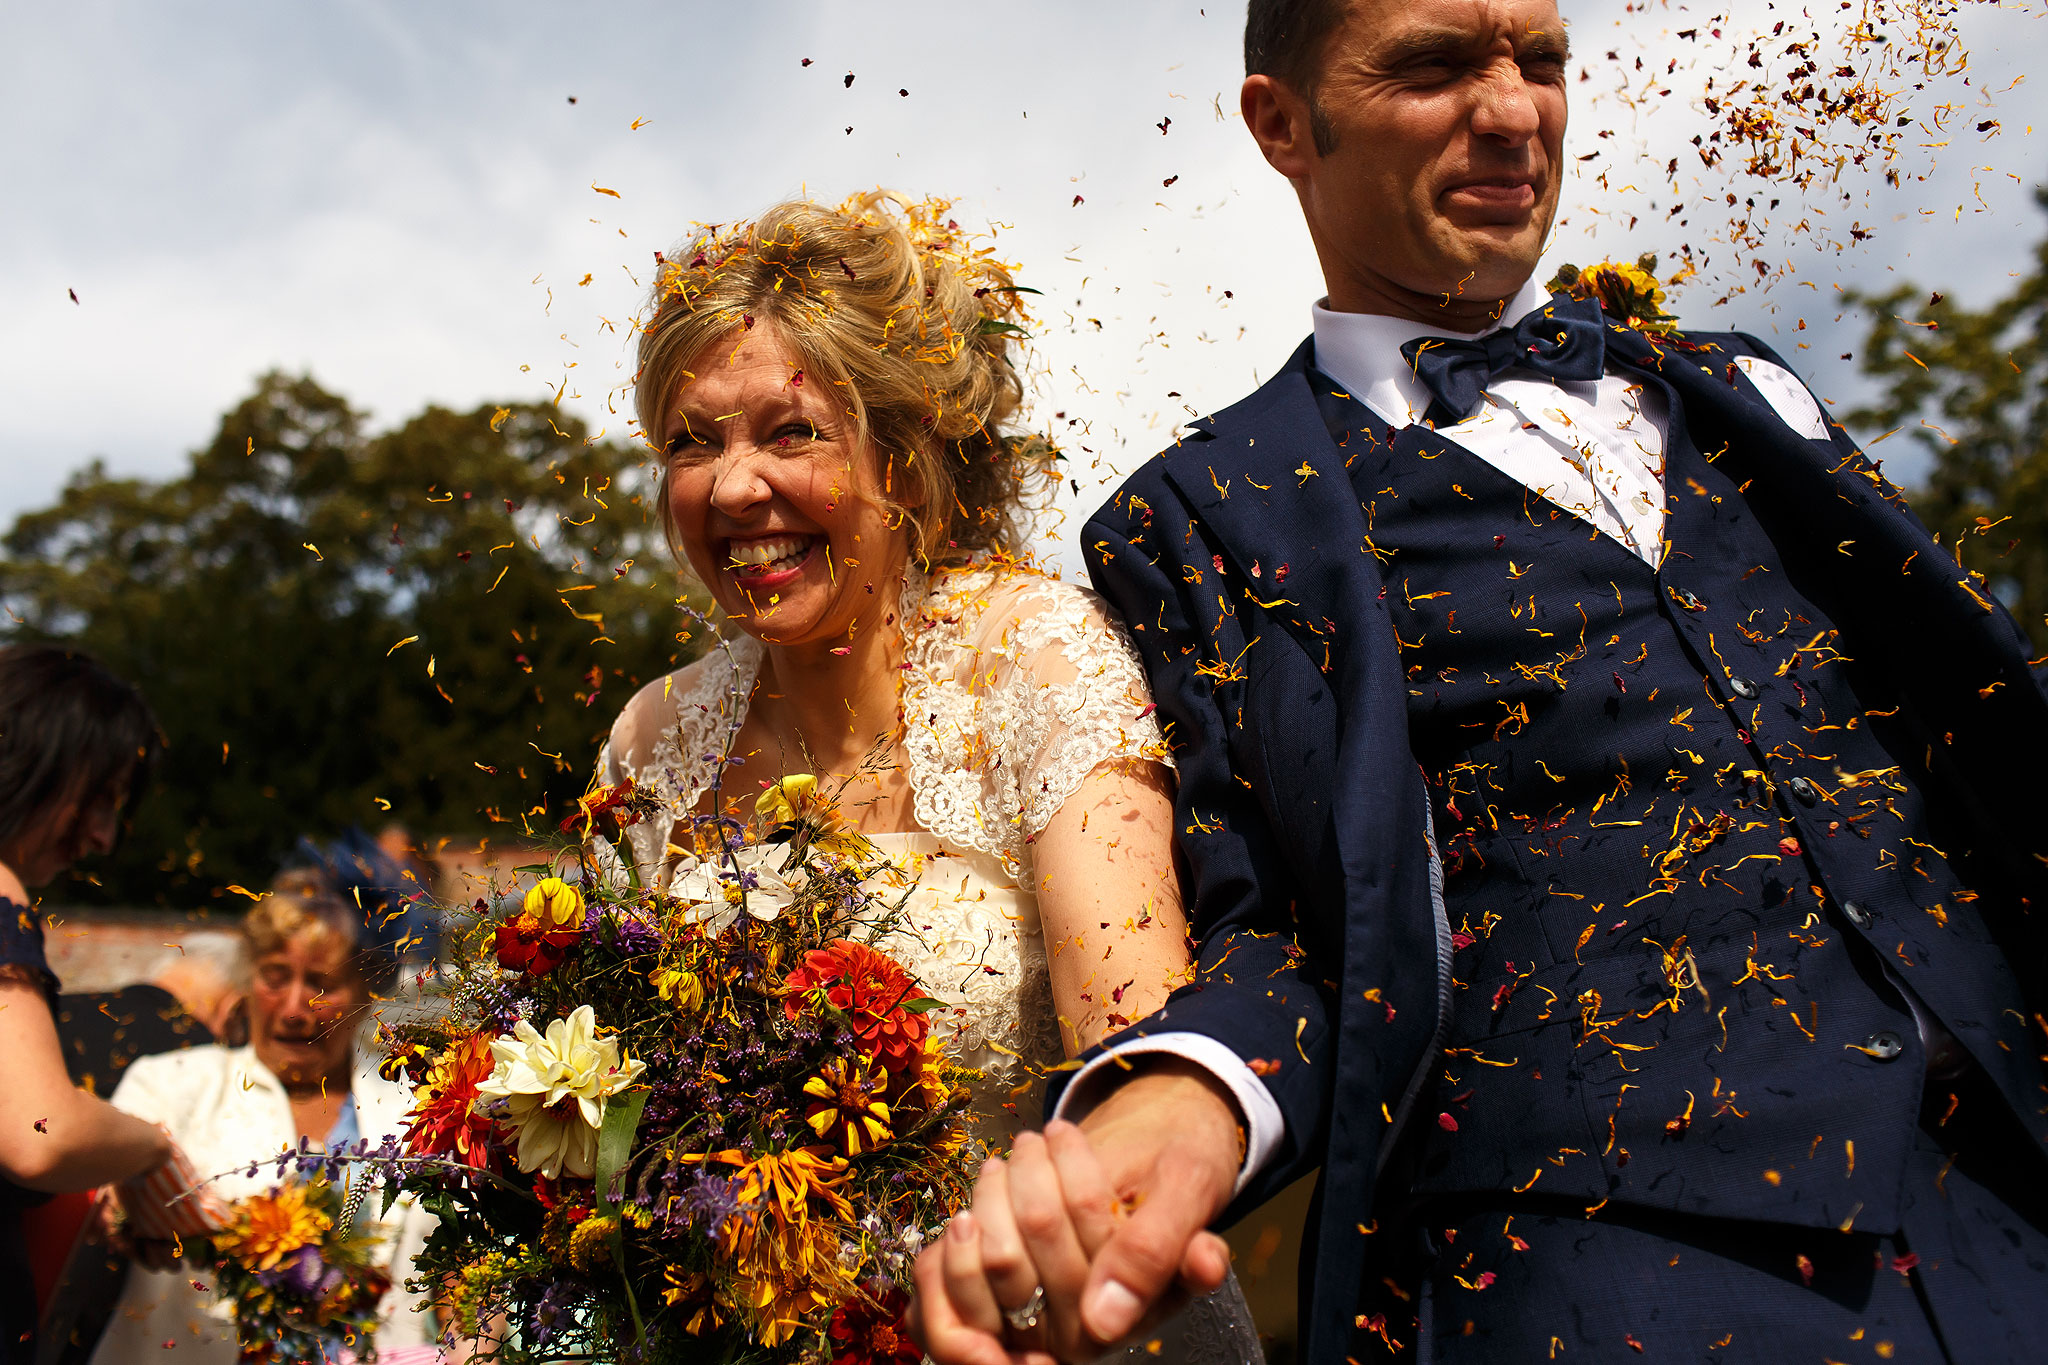 Bride and Groom walking as yellow confetti covers their faces